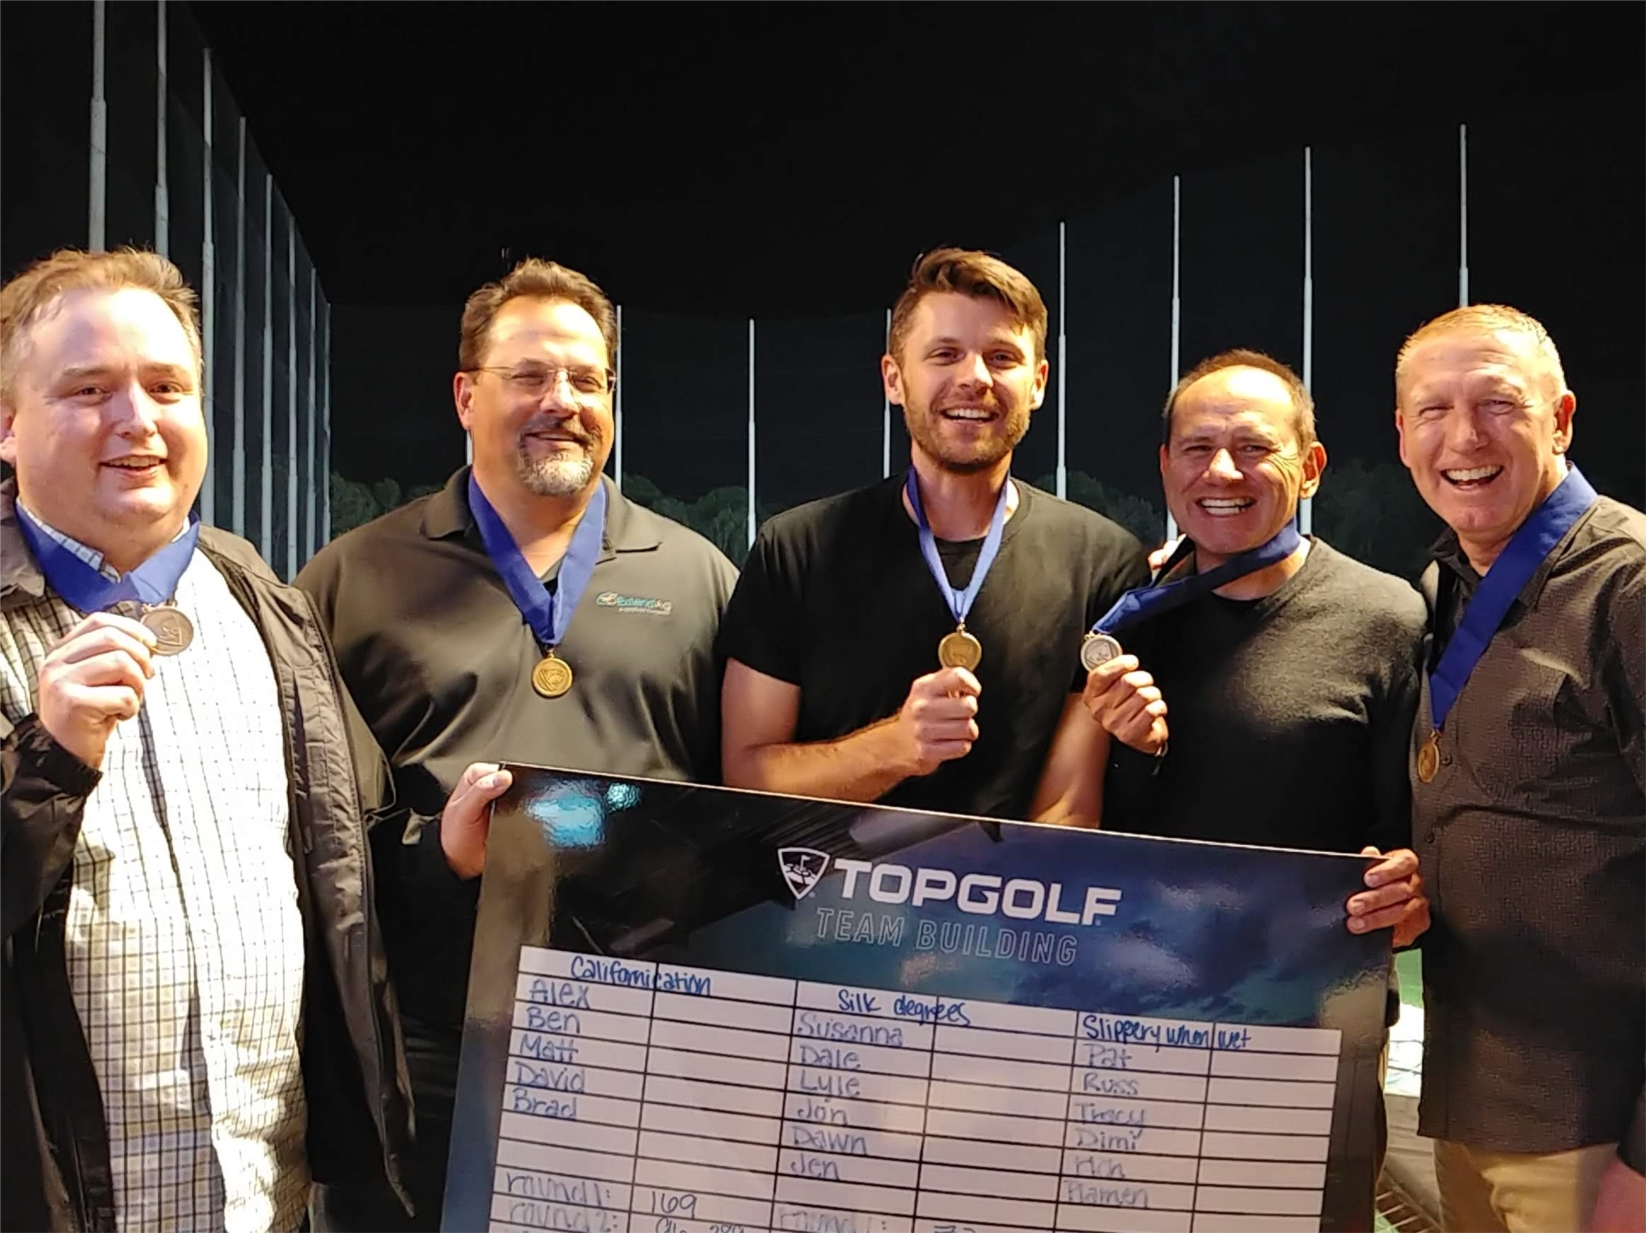 Manager's outing at Top Golf